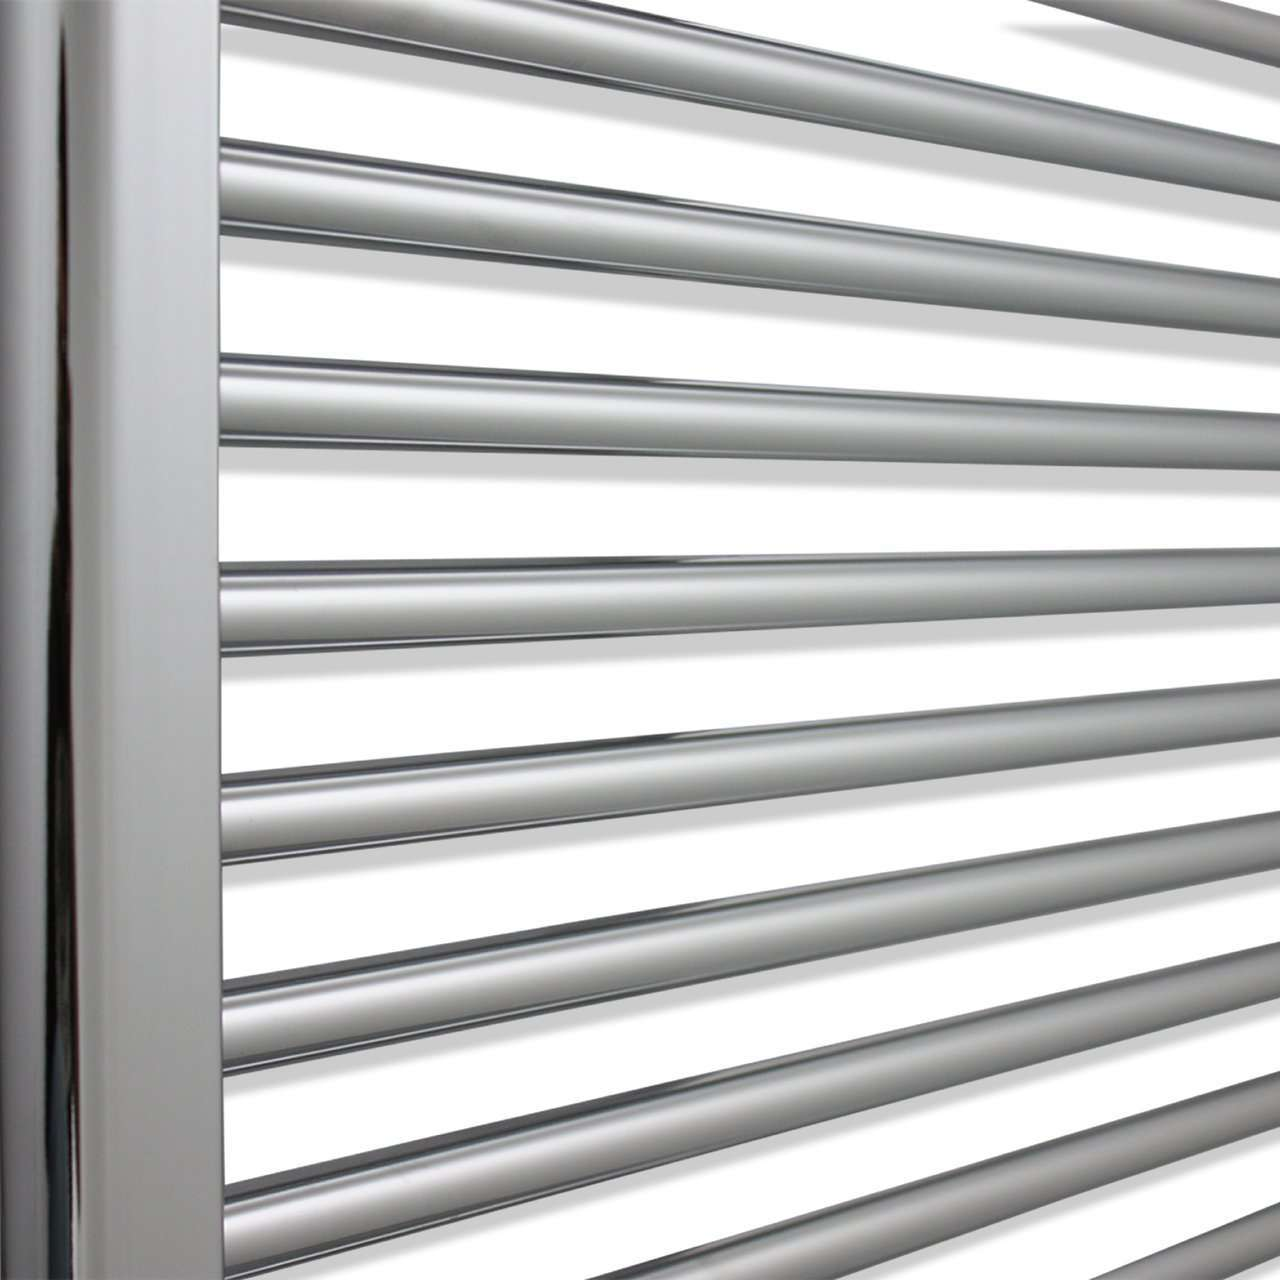 450mm Wide 1100mm High Curved Chrome Heated Towel Rail Radiator HTR